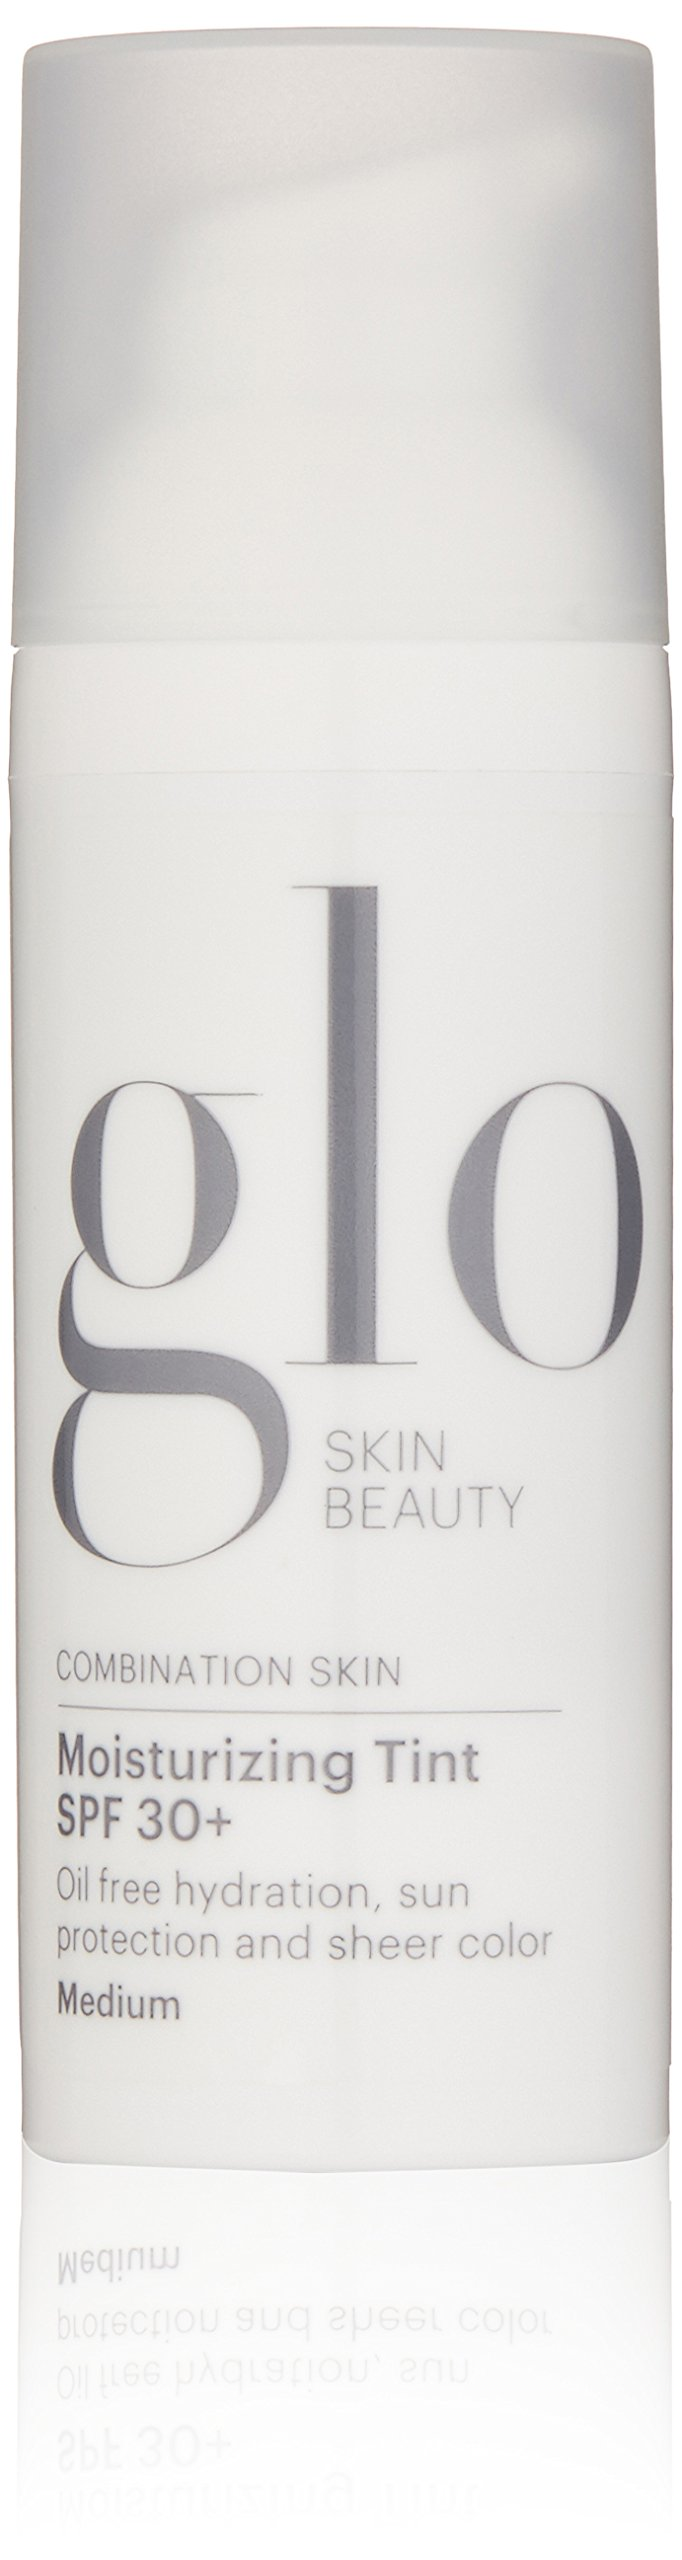 Glo Skin Beauty Moisturizing Tint SPF 30+ in Medium | Tinted Face Moisturizer with Sunscreen | 4 Shades, Dewy Finish by Glo Skin Beauty (Image #1)